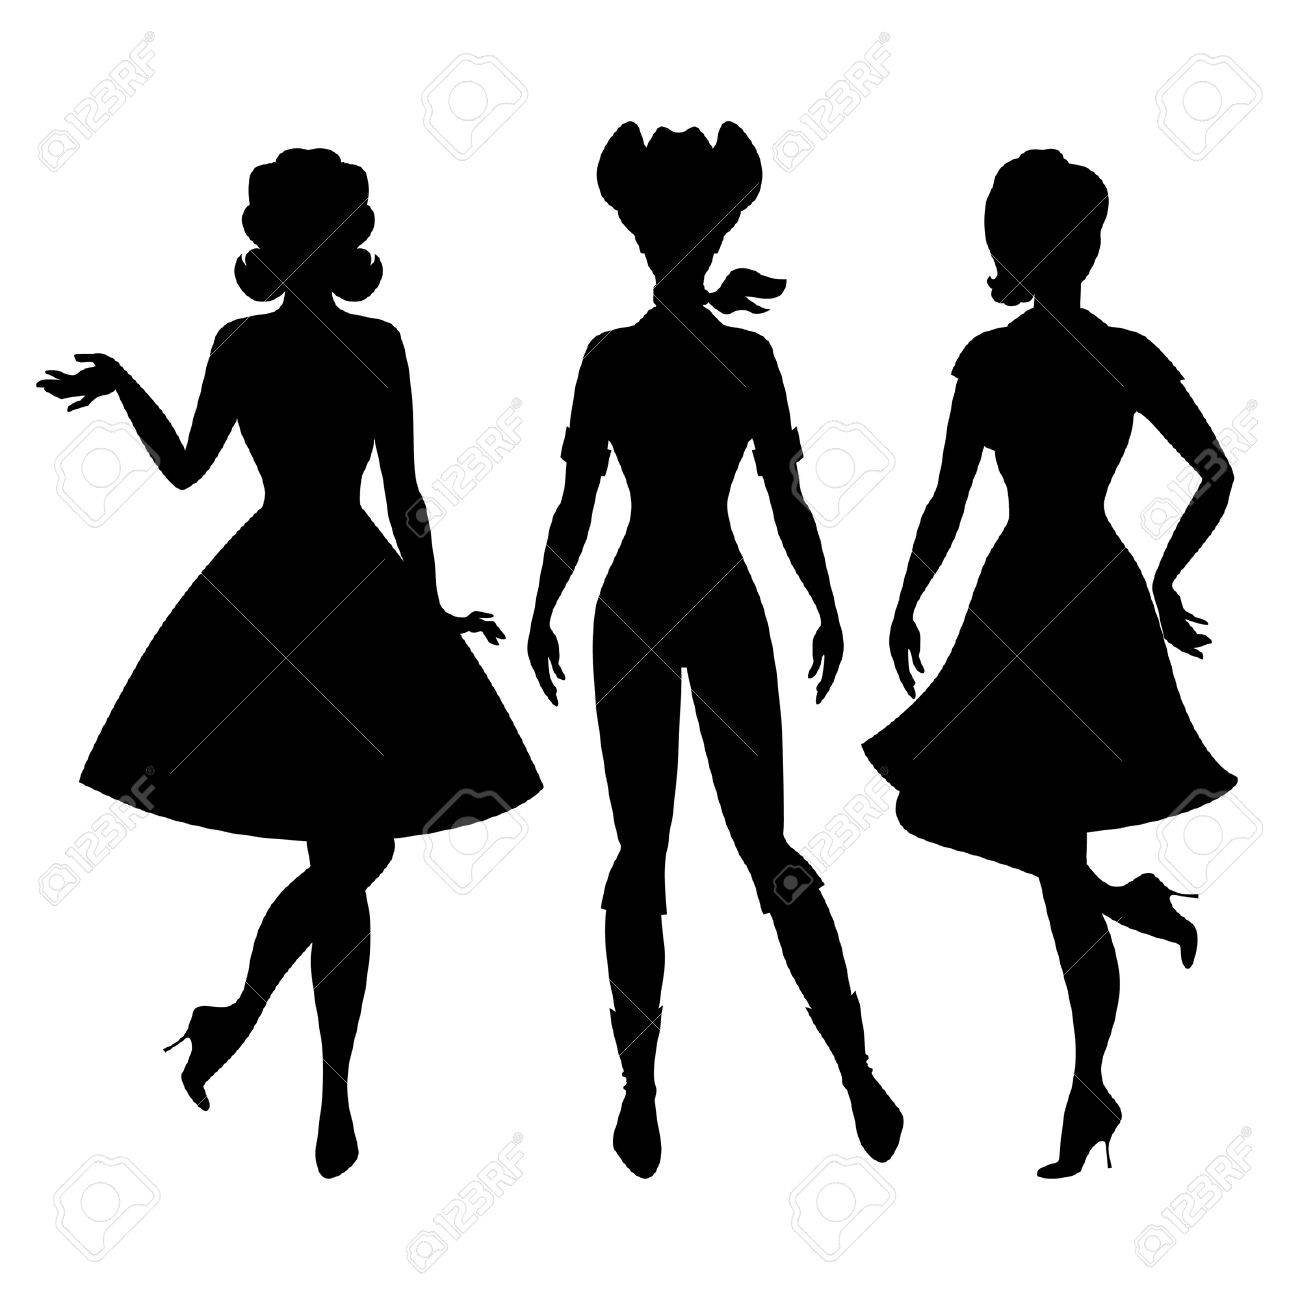 pin up silhouette pin up girl clipart free download on clipartmag up pin silhouette